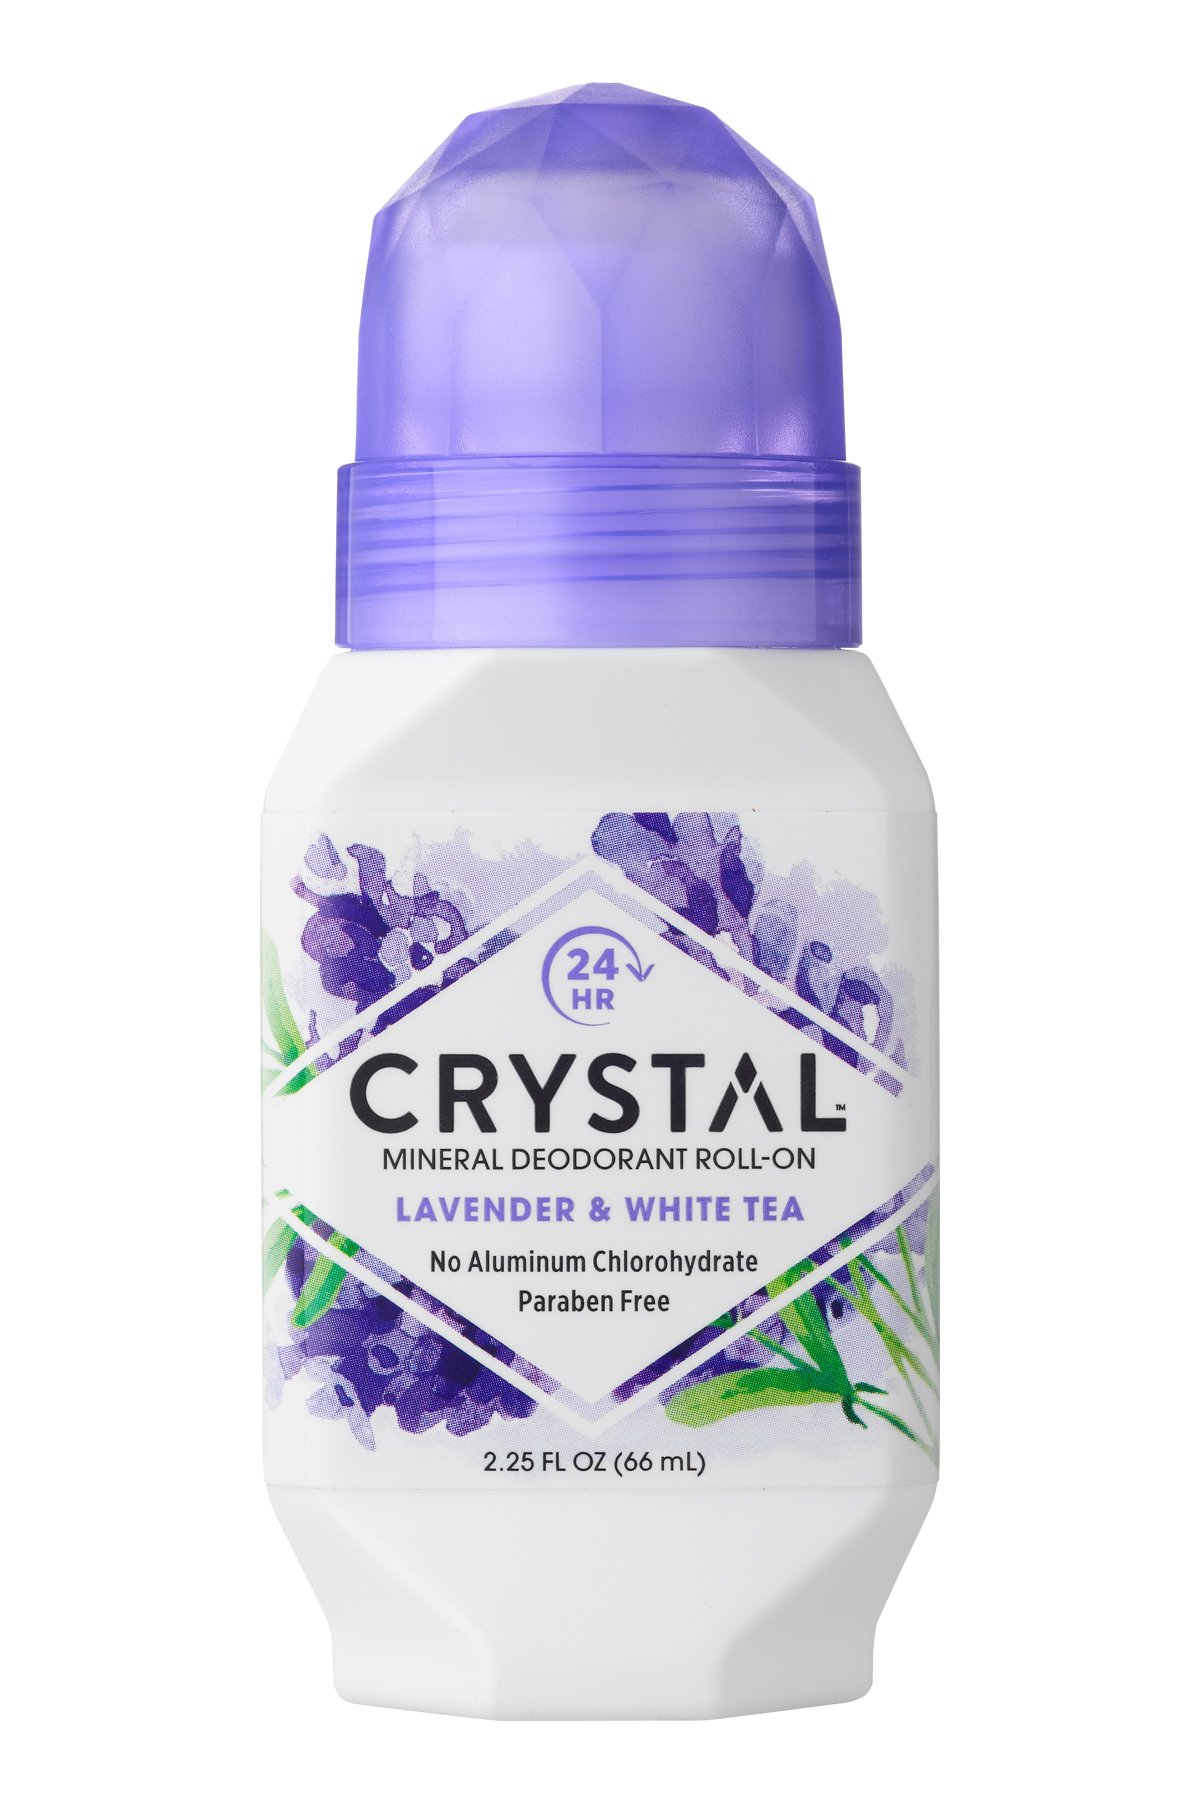 Crystal Mineral Deodorant Roll-On, Lavendar & White Tea 2.25 oz (Pack of 3)